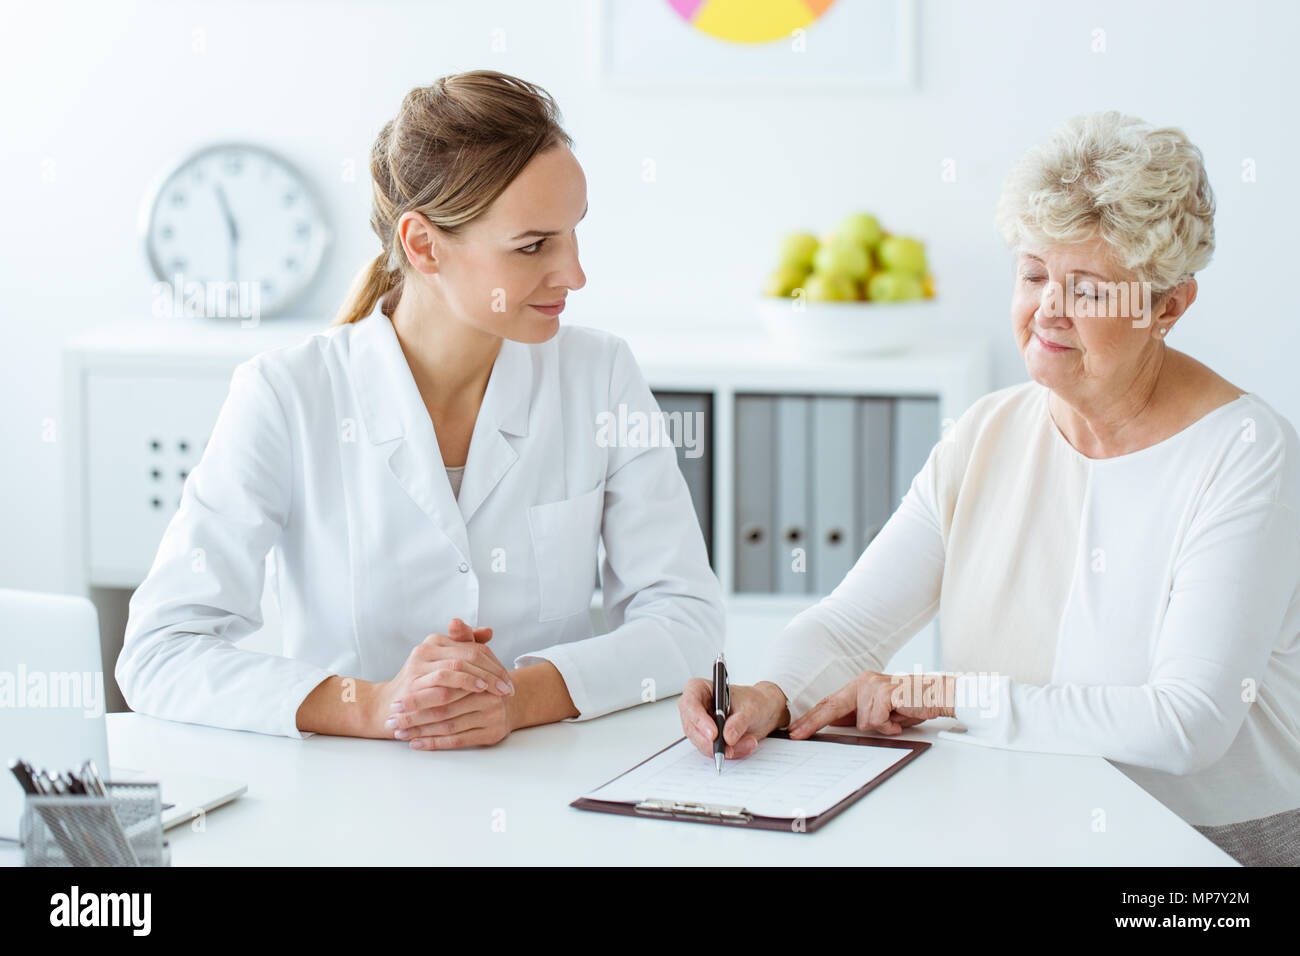 Patient with diabetes writing daily eating habits during a meeting with dietician - Stock Image